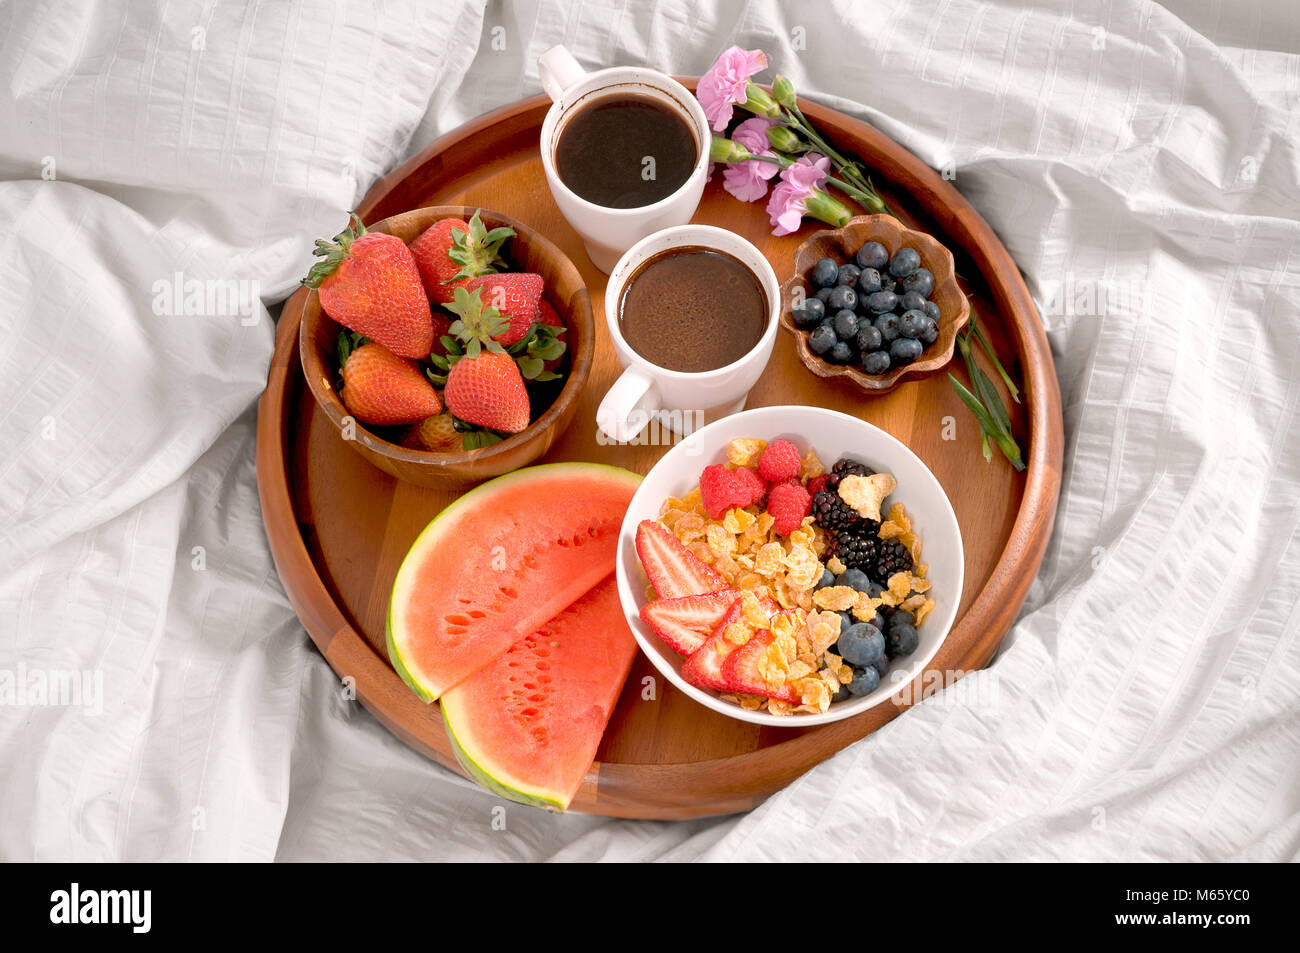 Morning And Healthy Breakfast Breakfast In Bed Stock Photo Alamy